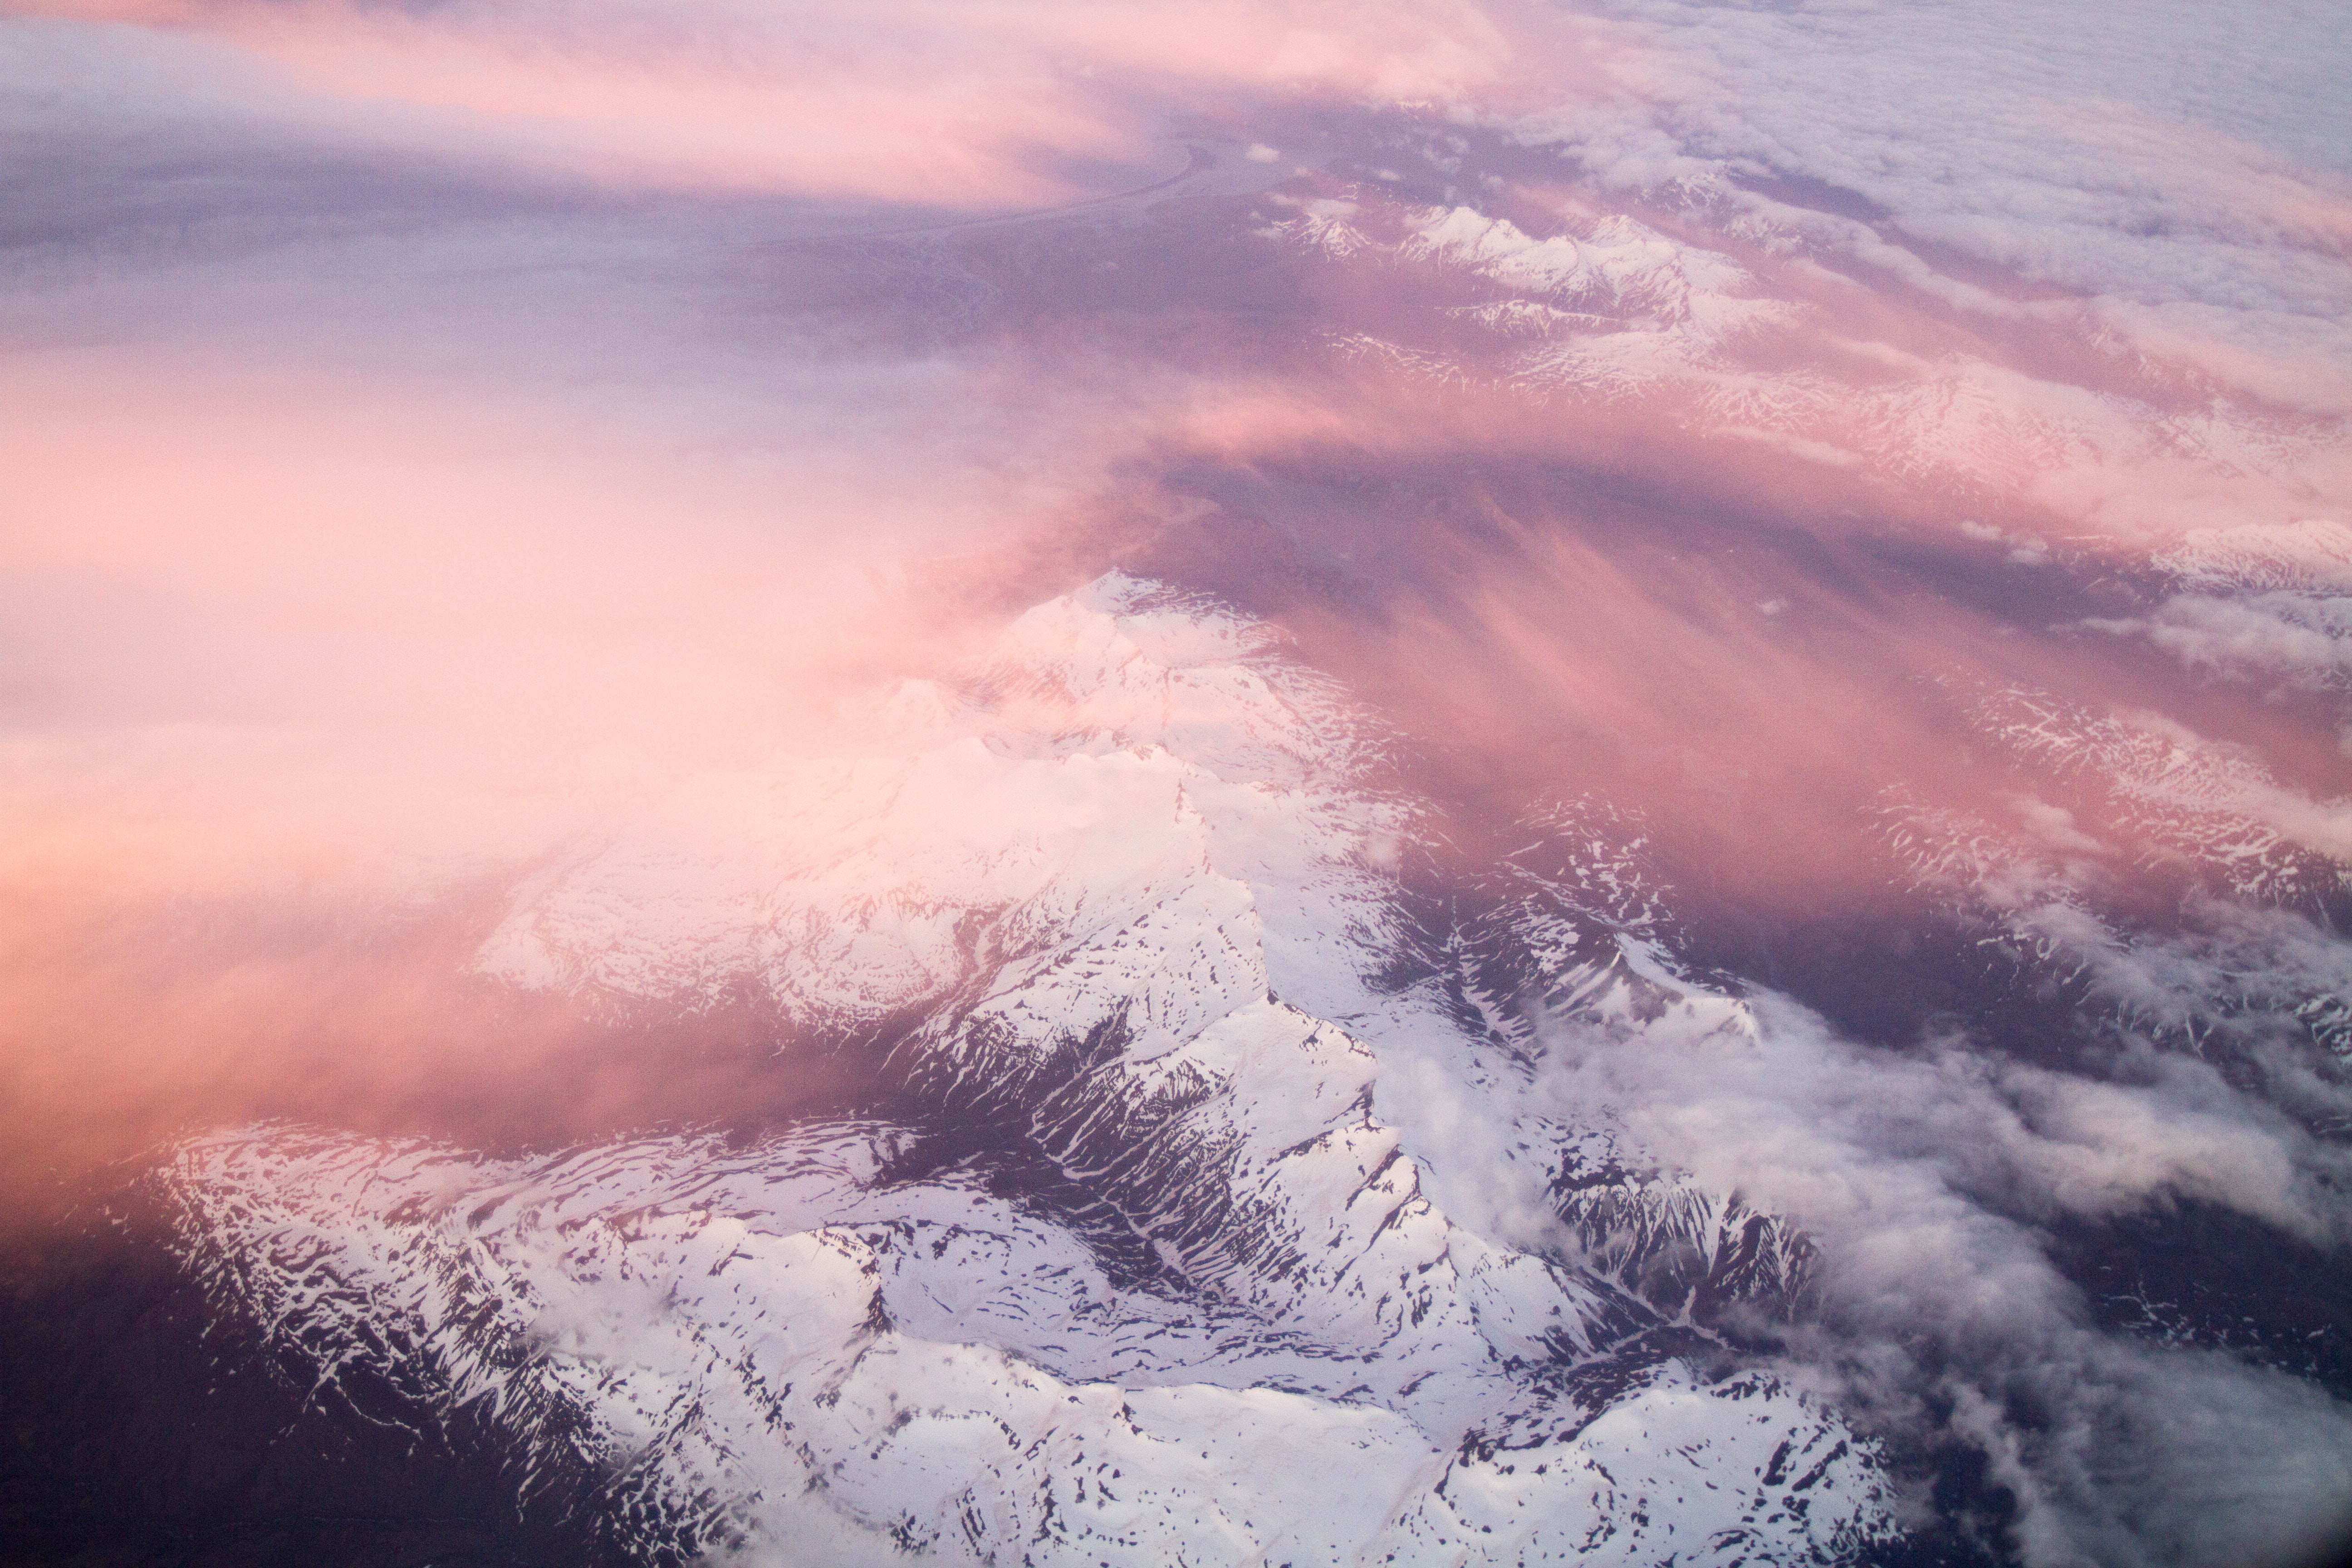 An aerial shot of clouds over white mountain ridges illuminated by the setting sun